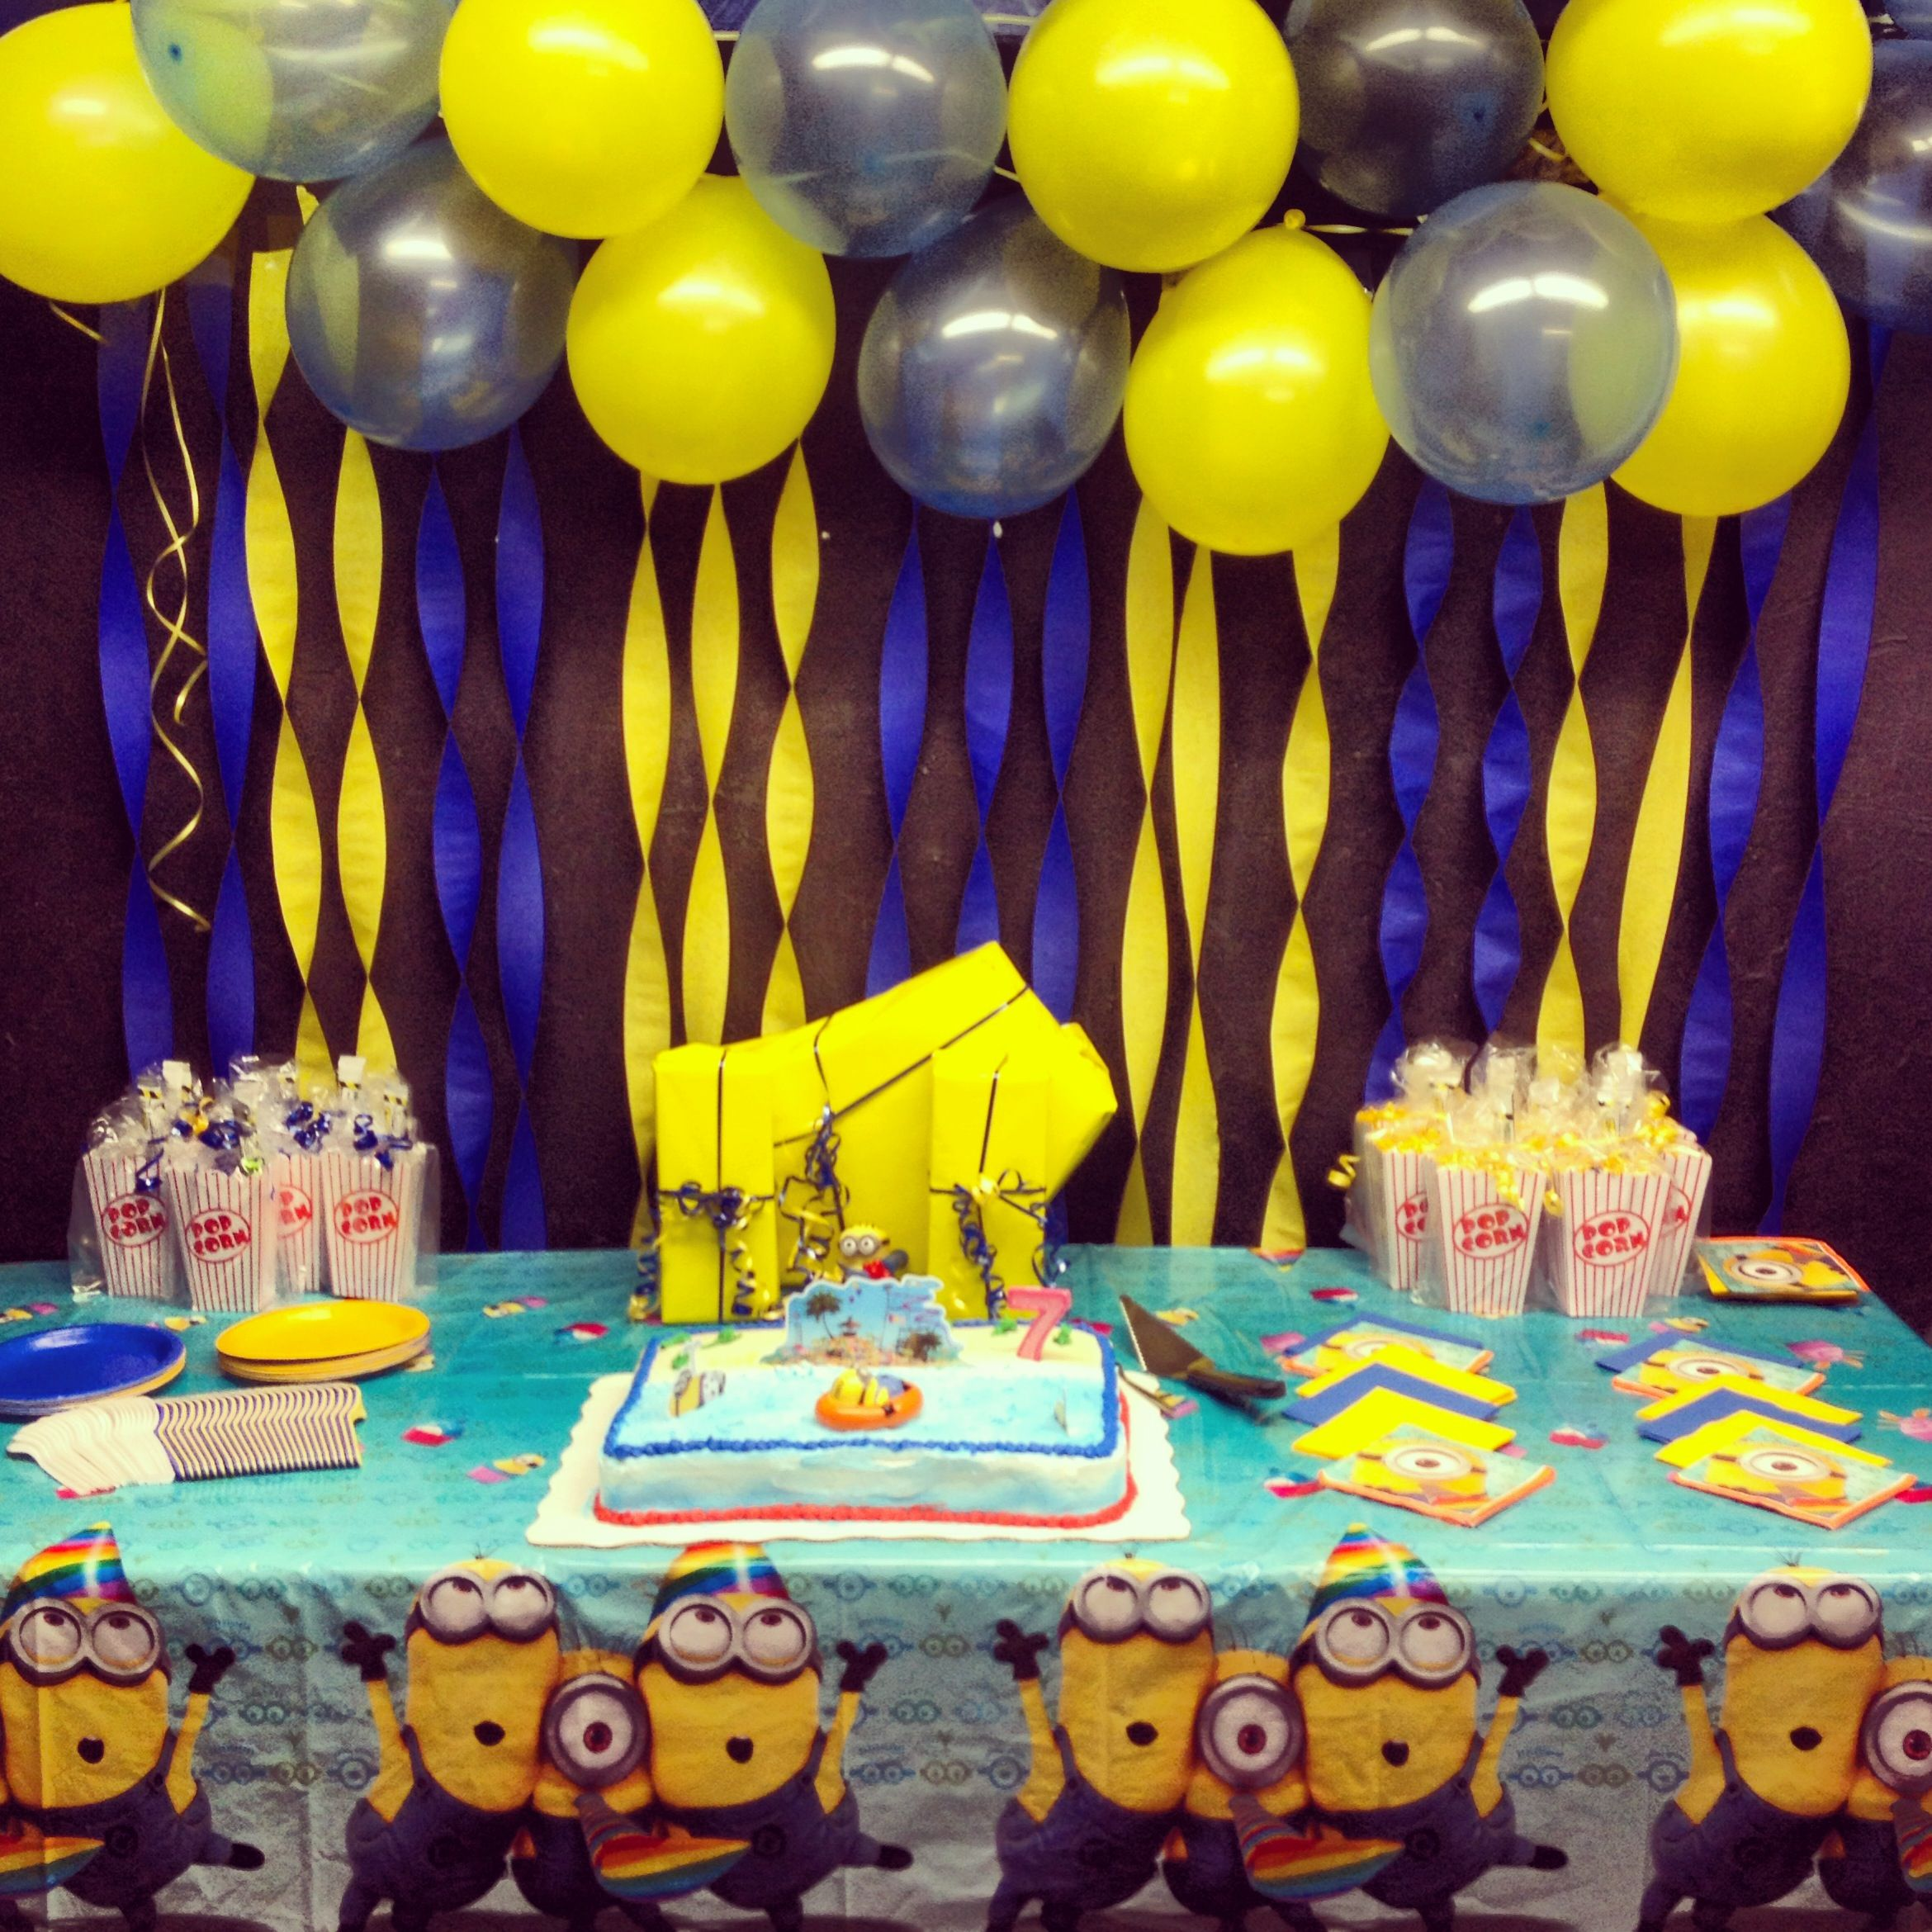 minion party on pinterest minion party party rules and. Black Bedroom Furniture Sets. Home Design Ideas